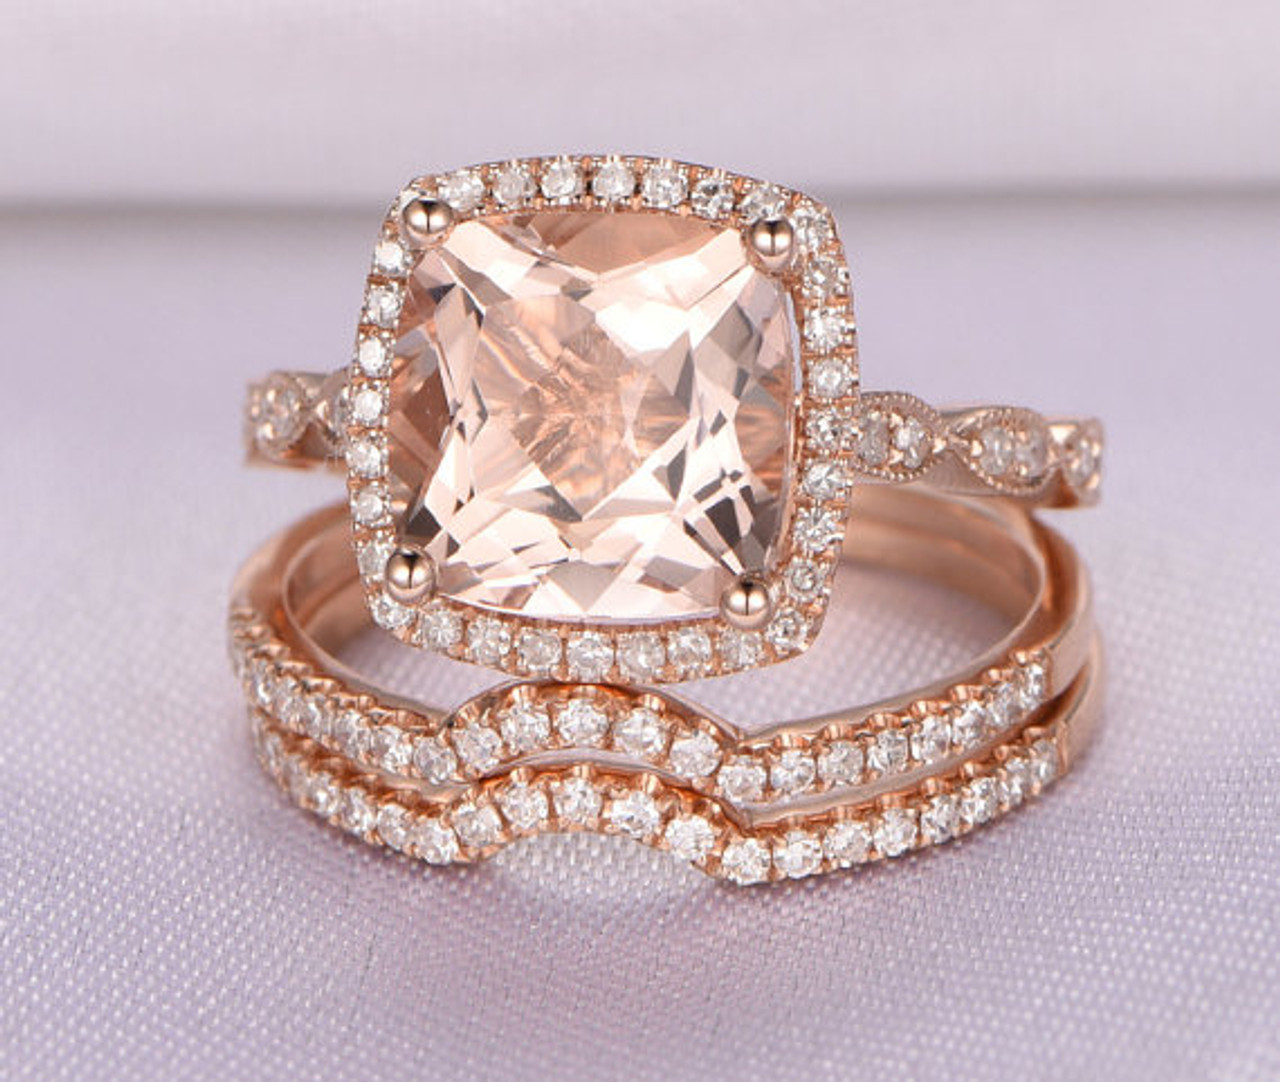 rose gold band available ringmorganite pink stoneart sapphire ring morganite rings oval engagement bandpink cut diamond stone deco art wedding media